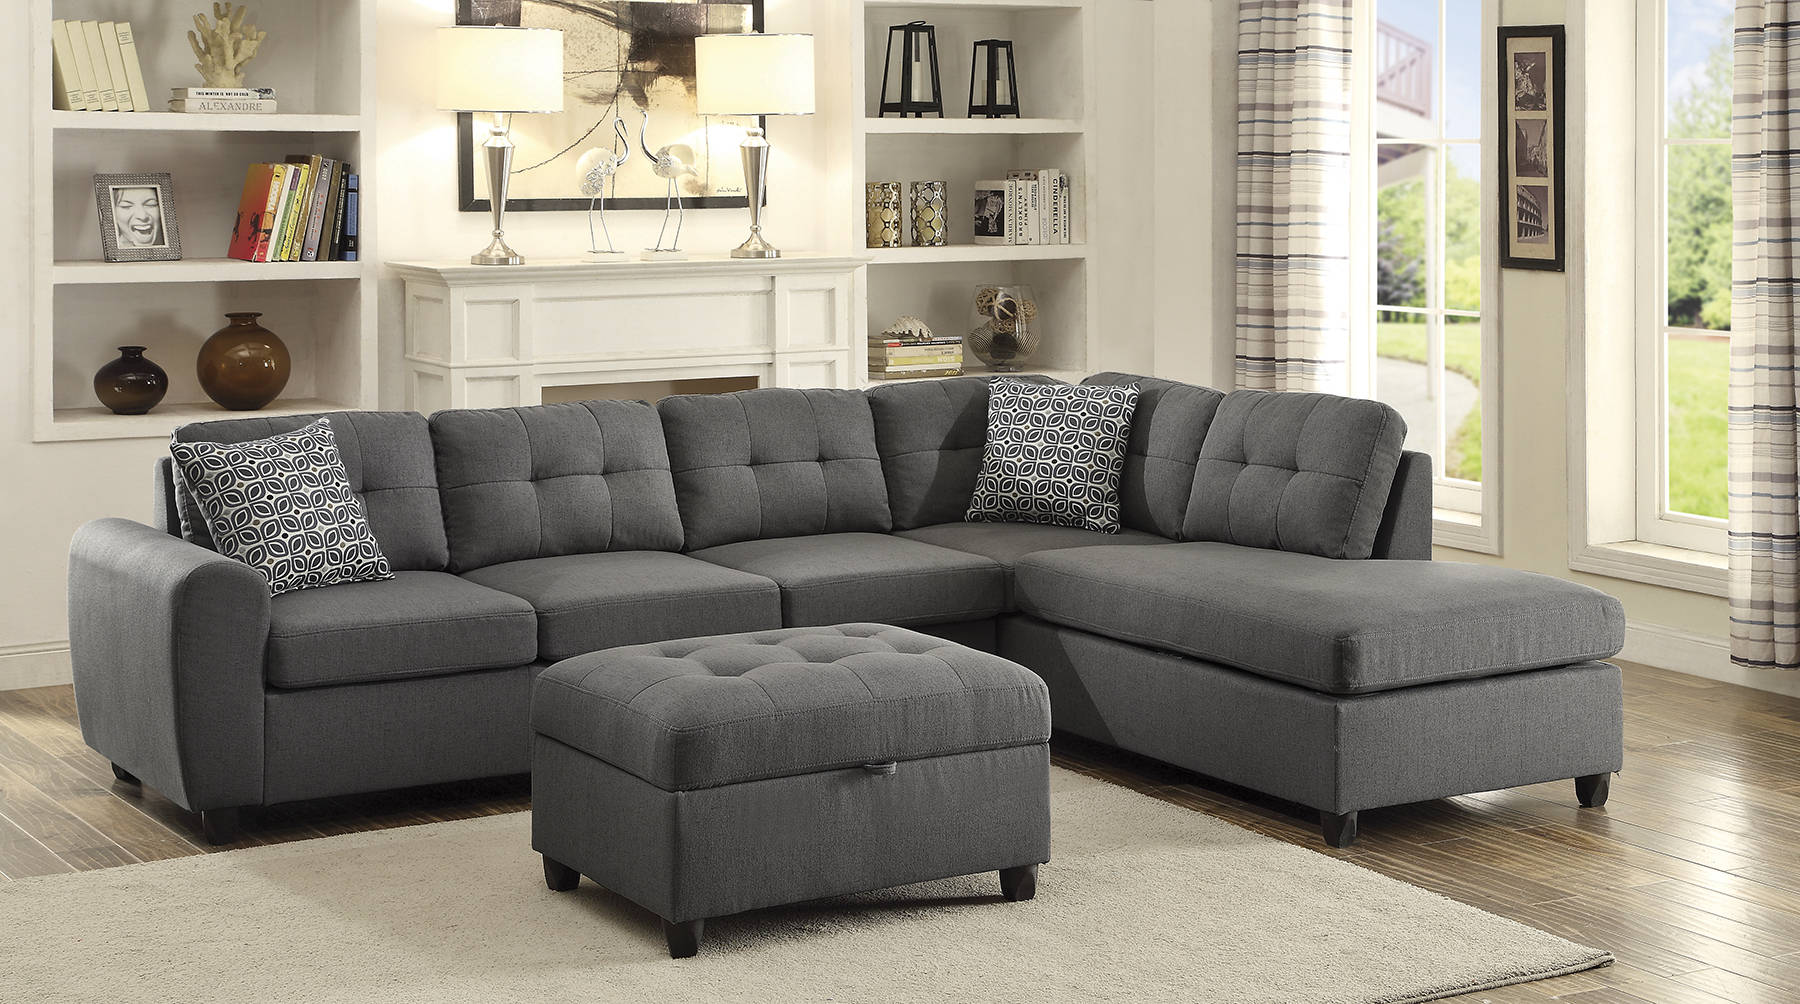 Coaster Furniture Stonenesse Sectional With Ottoman Click To Enlarge ...